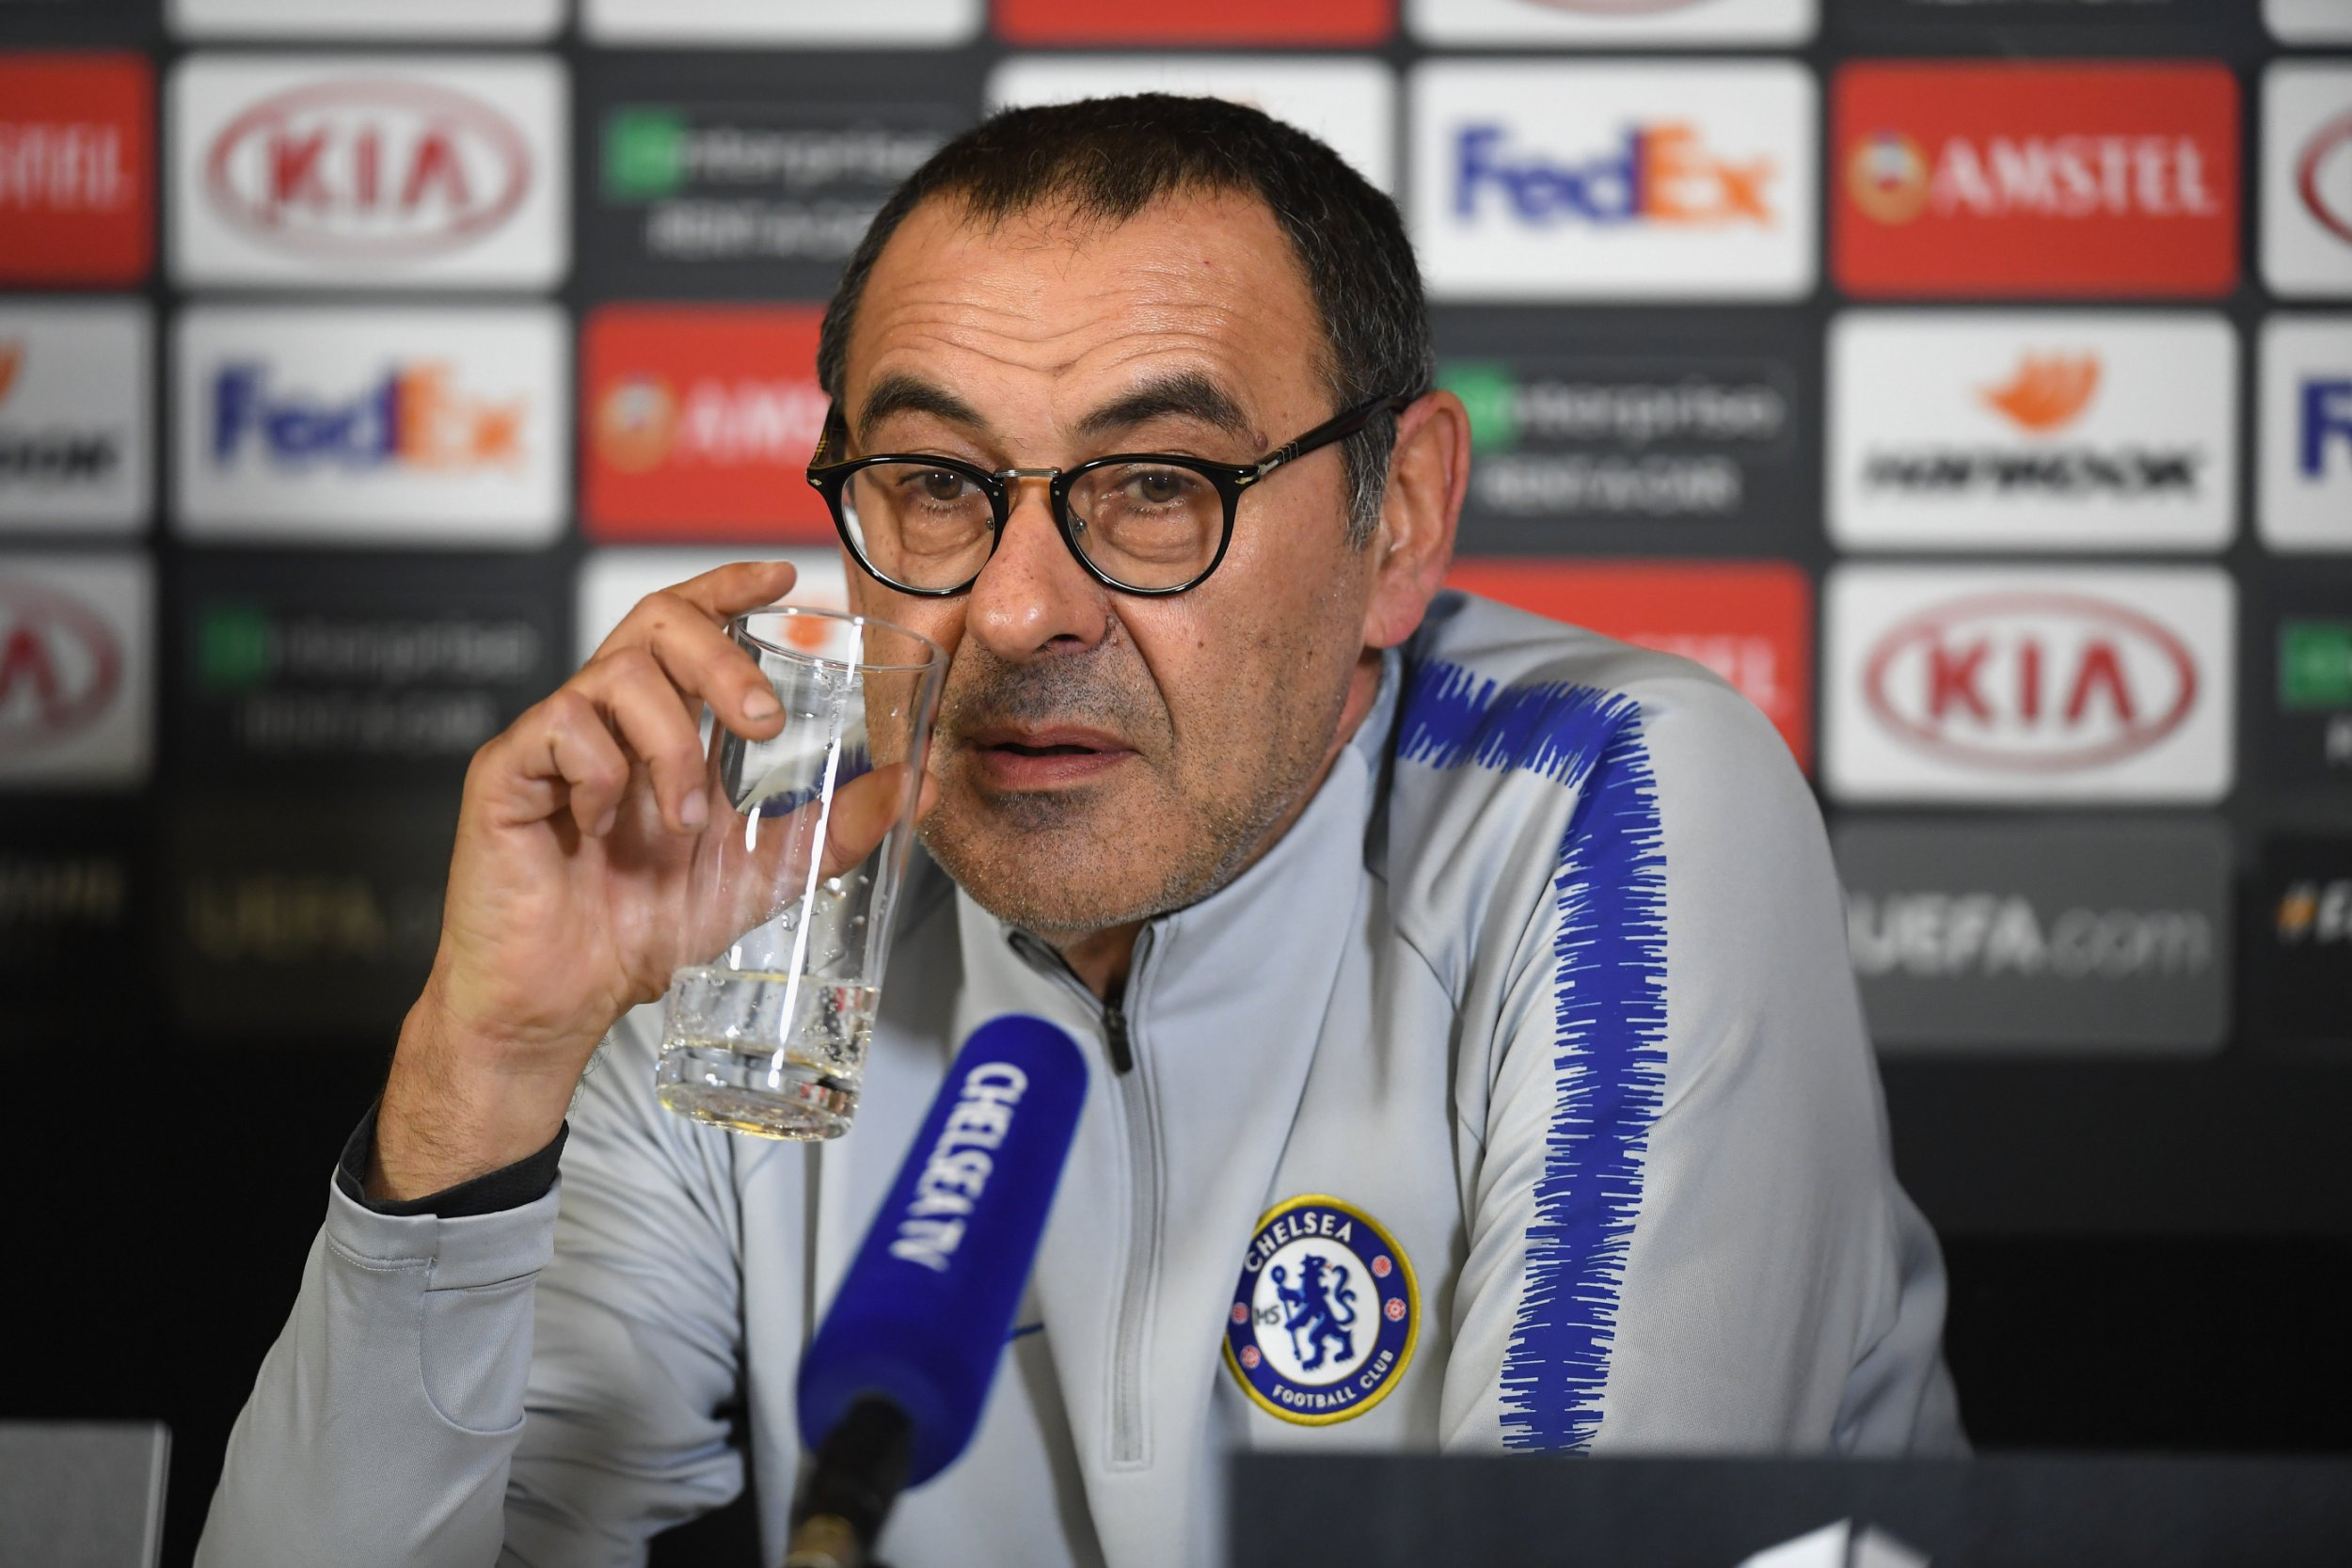 COBHAM, ENGLAND - FEBRUARY 20: Maurizio Sarri of Chelsea speaks during a press conference at Chelsea Training Ground on February 20, 2019 in Cobham, England. (Photo by Darren Walsh/Chelsea FC via Getty Images)